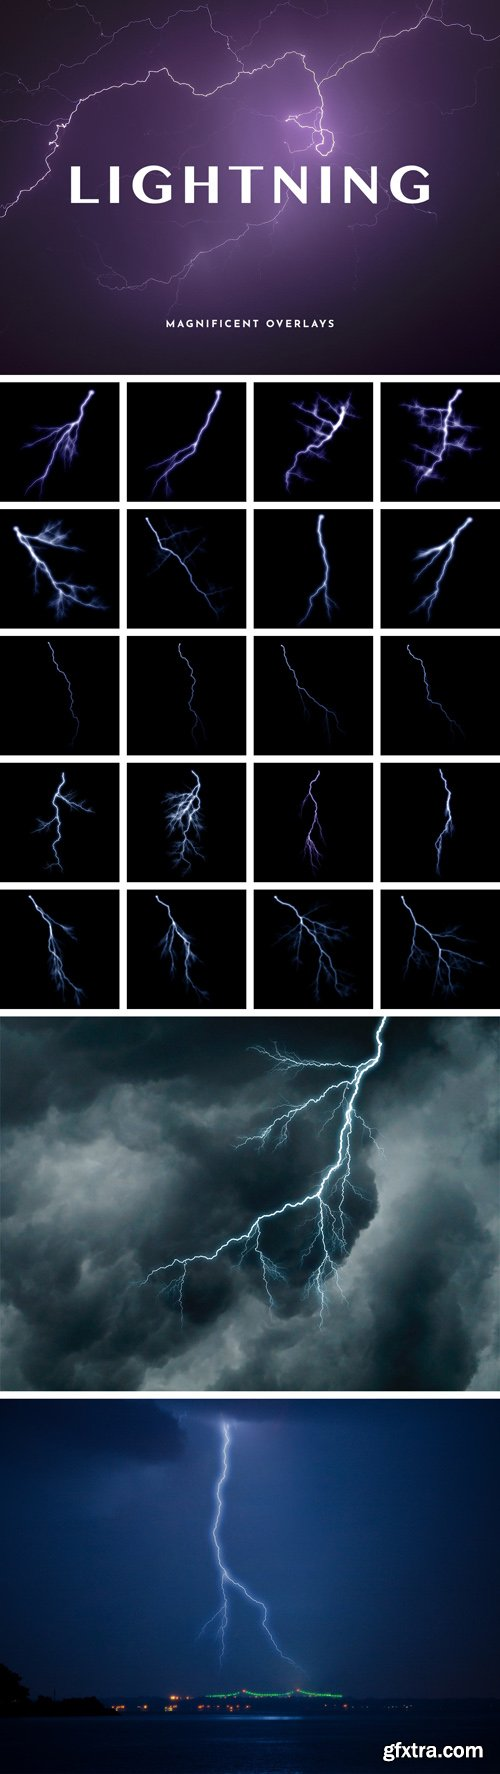 75 Magnificent Overlays Lightning